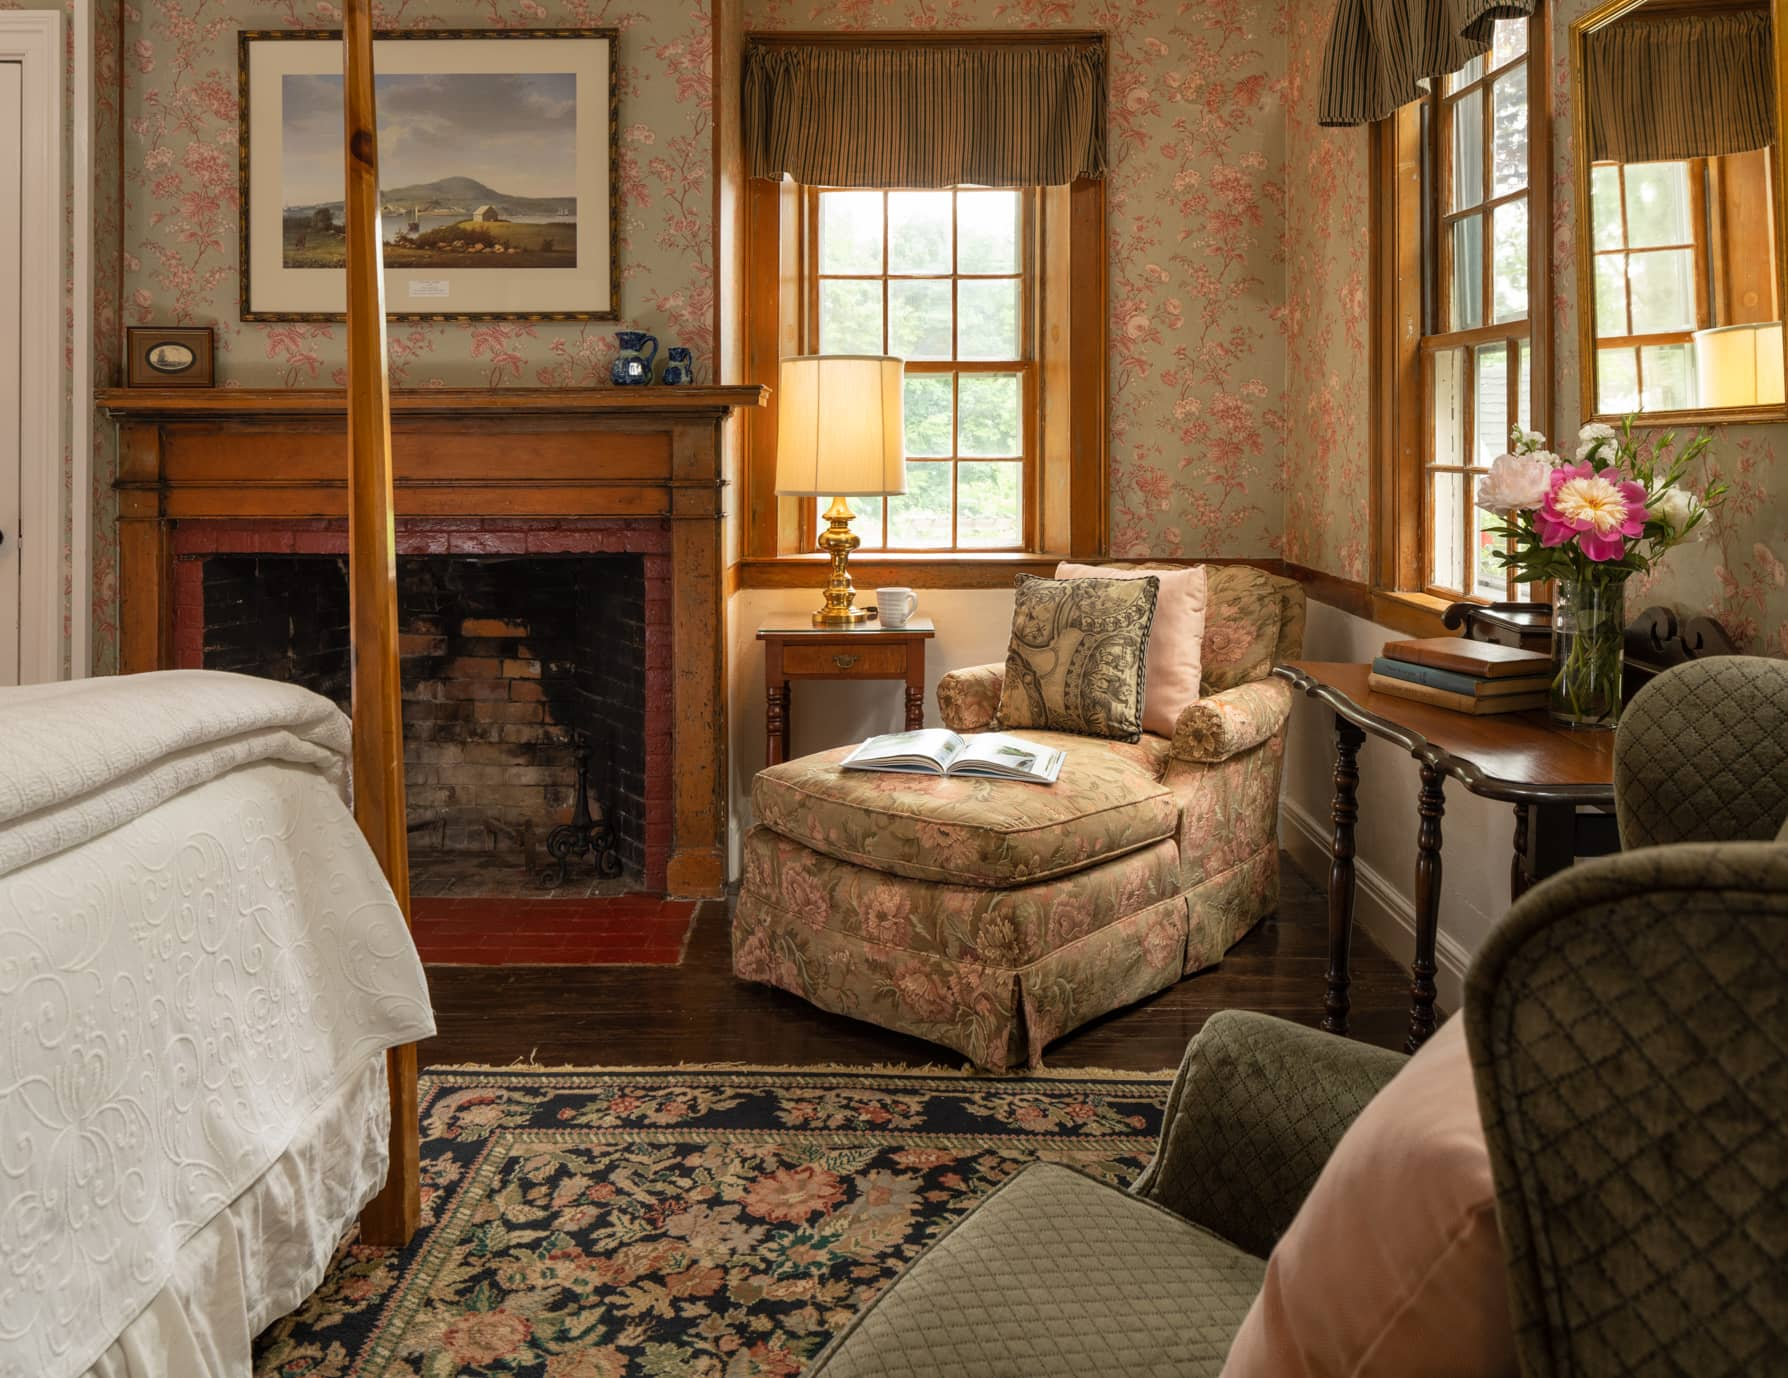 Room 11 with a king bed and a fireplace with a seating area for two